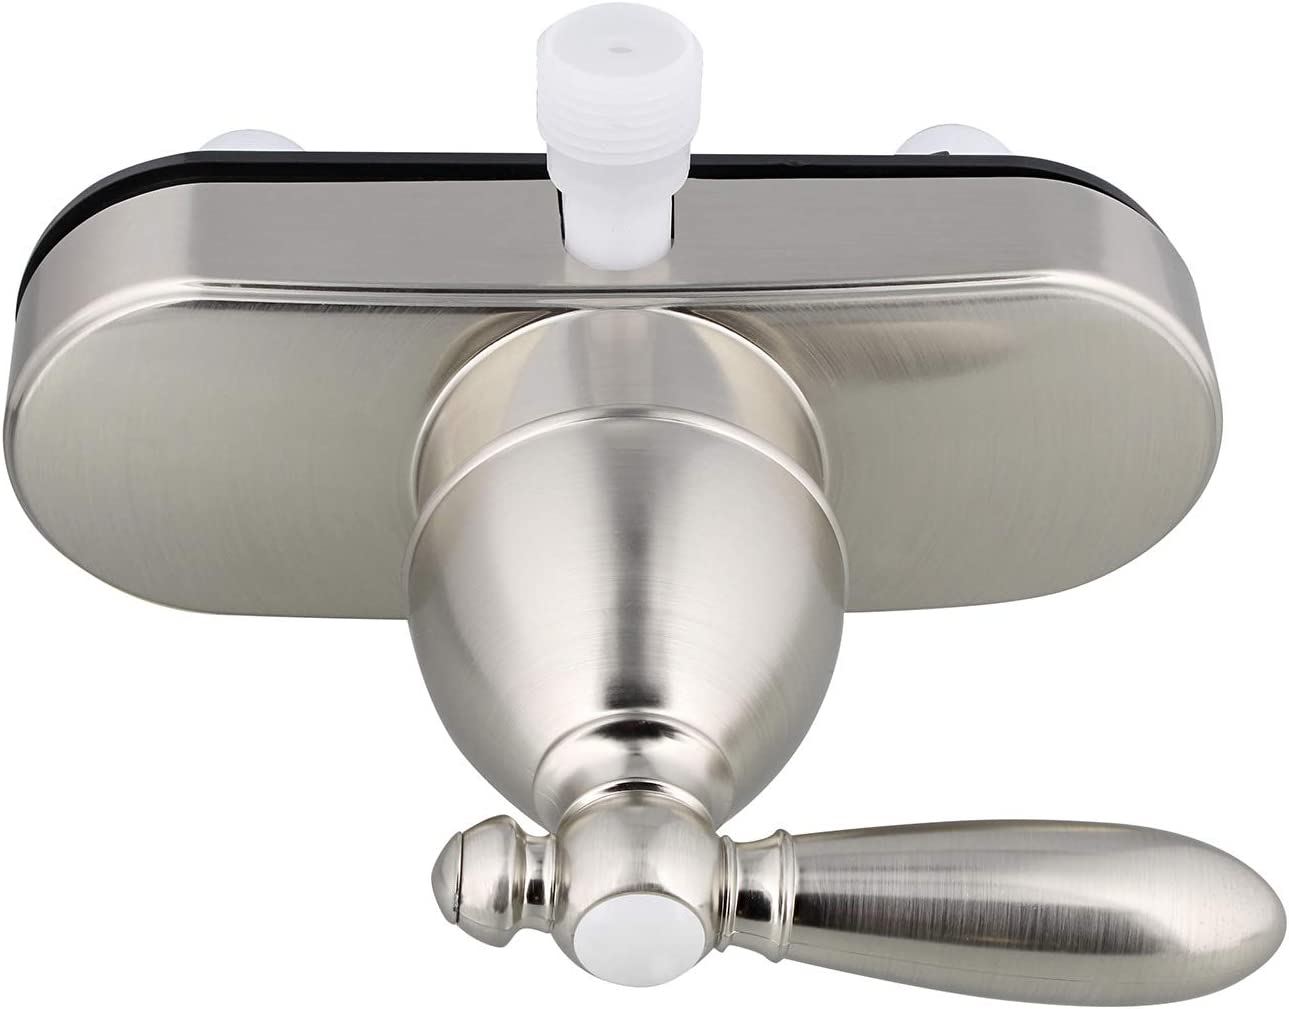 Empire Faucets RV Shower Valve Kit - 4 Inch Shower Diverter Valve and Vacuum Breaker Unit with Lever Handle, Nickel